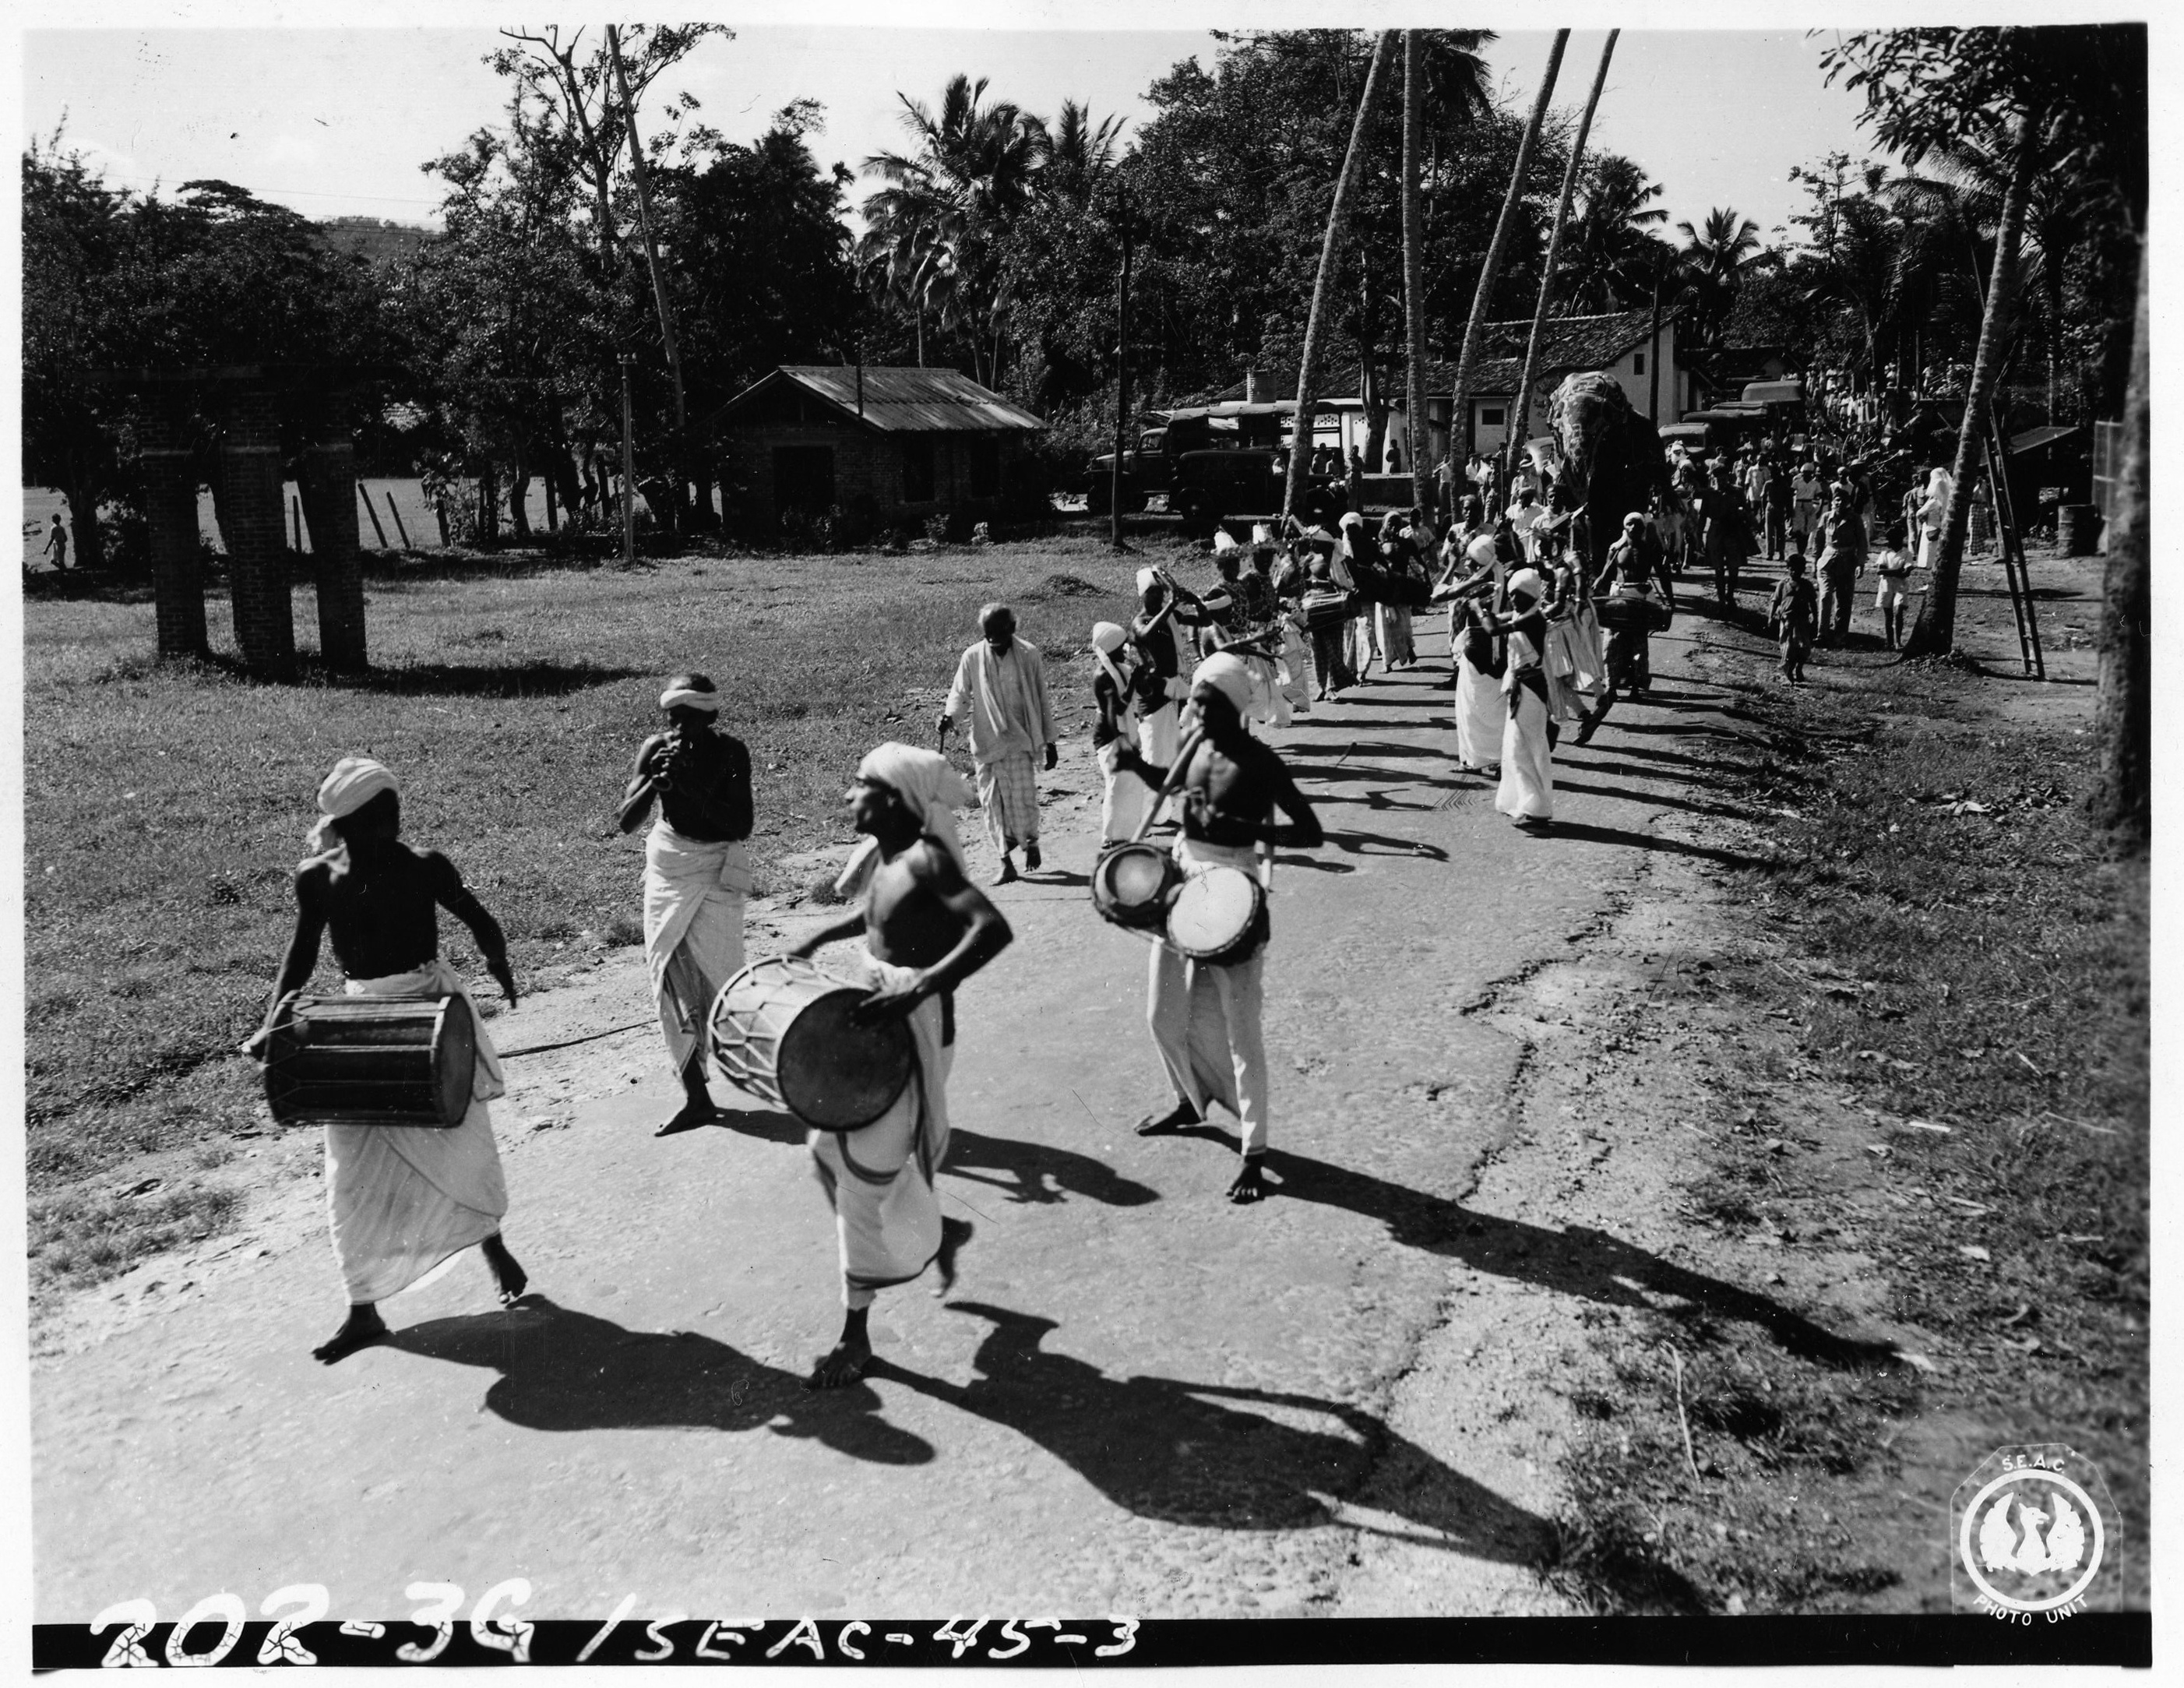 Jan 5, 1945. The procession was led by the Kandyan dancers followed by an elephant and Father Christmas in sleigh pulled by two white bullocks. The procession was enroute to a British hospital to entertain its patients during their Red Cross Christmas Party.